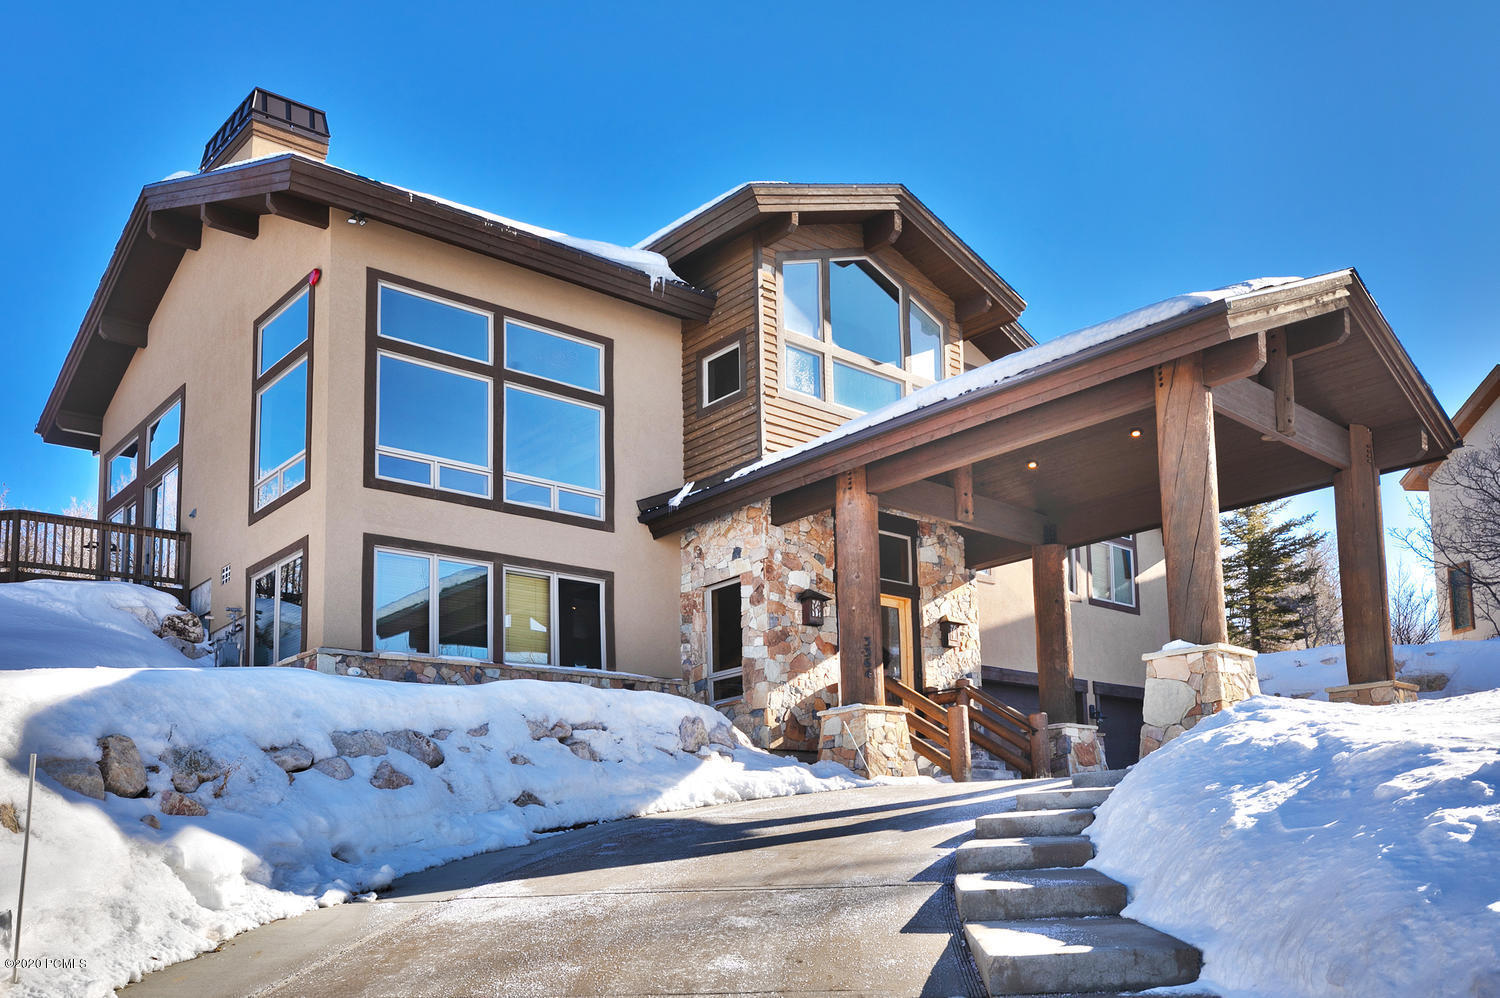 3364 Solamere Drive, Park City, Utah 84060, 6 Bedrooms Bedrooms, ,5 BathroomsBathrooms,Single Family,For Sale,Solamere,20190109112430415765000000